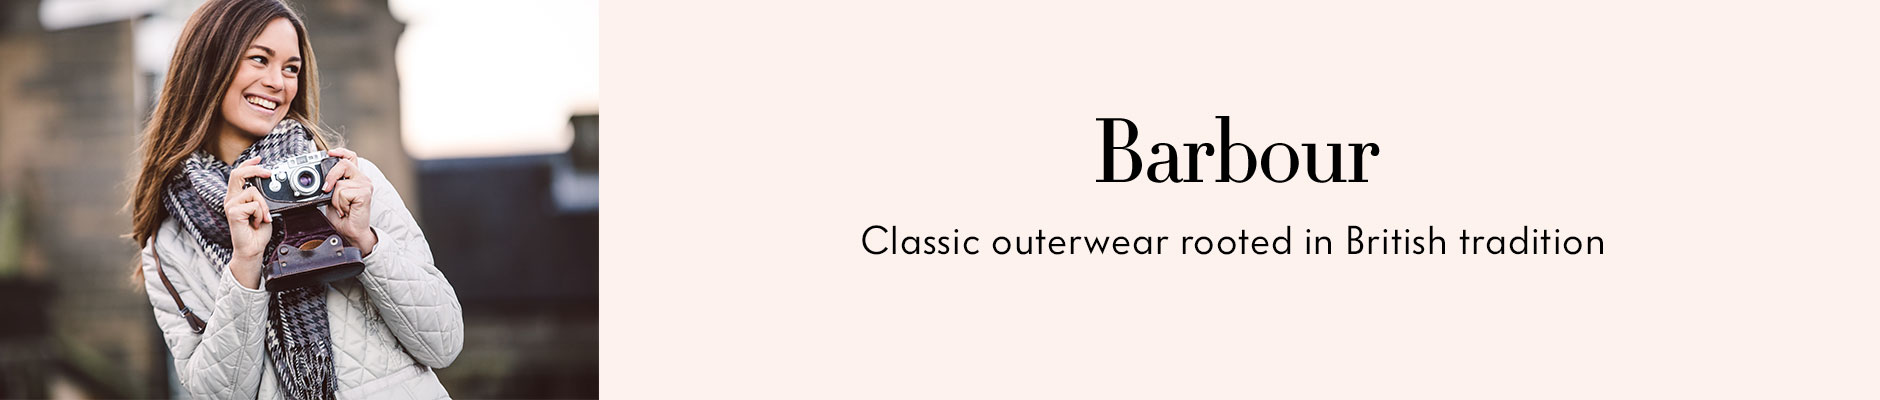 Barbour - Classic outerwear rooted in British tradition